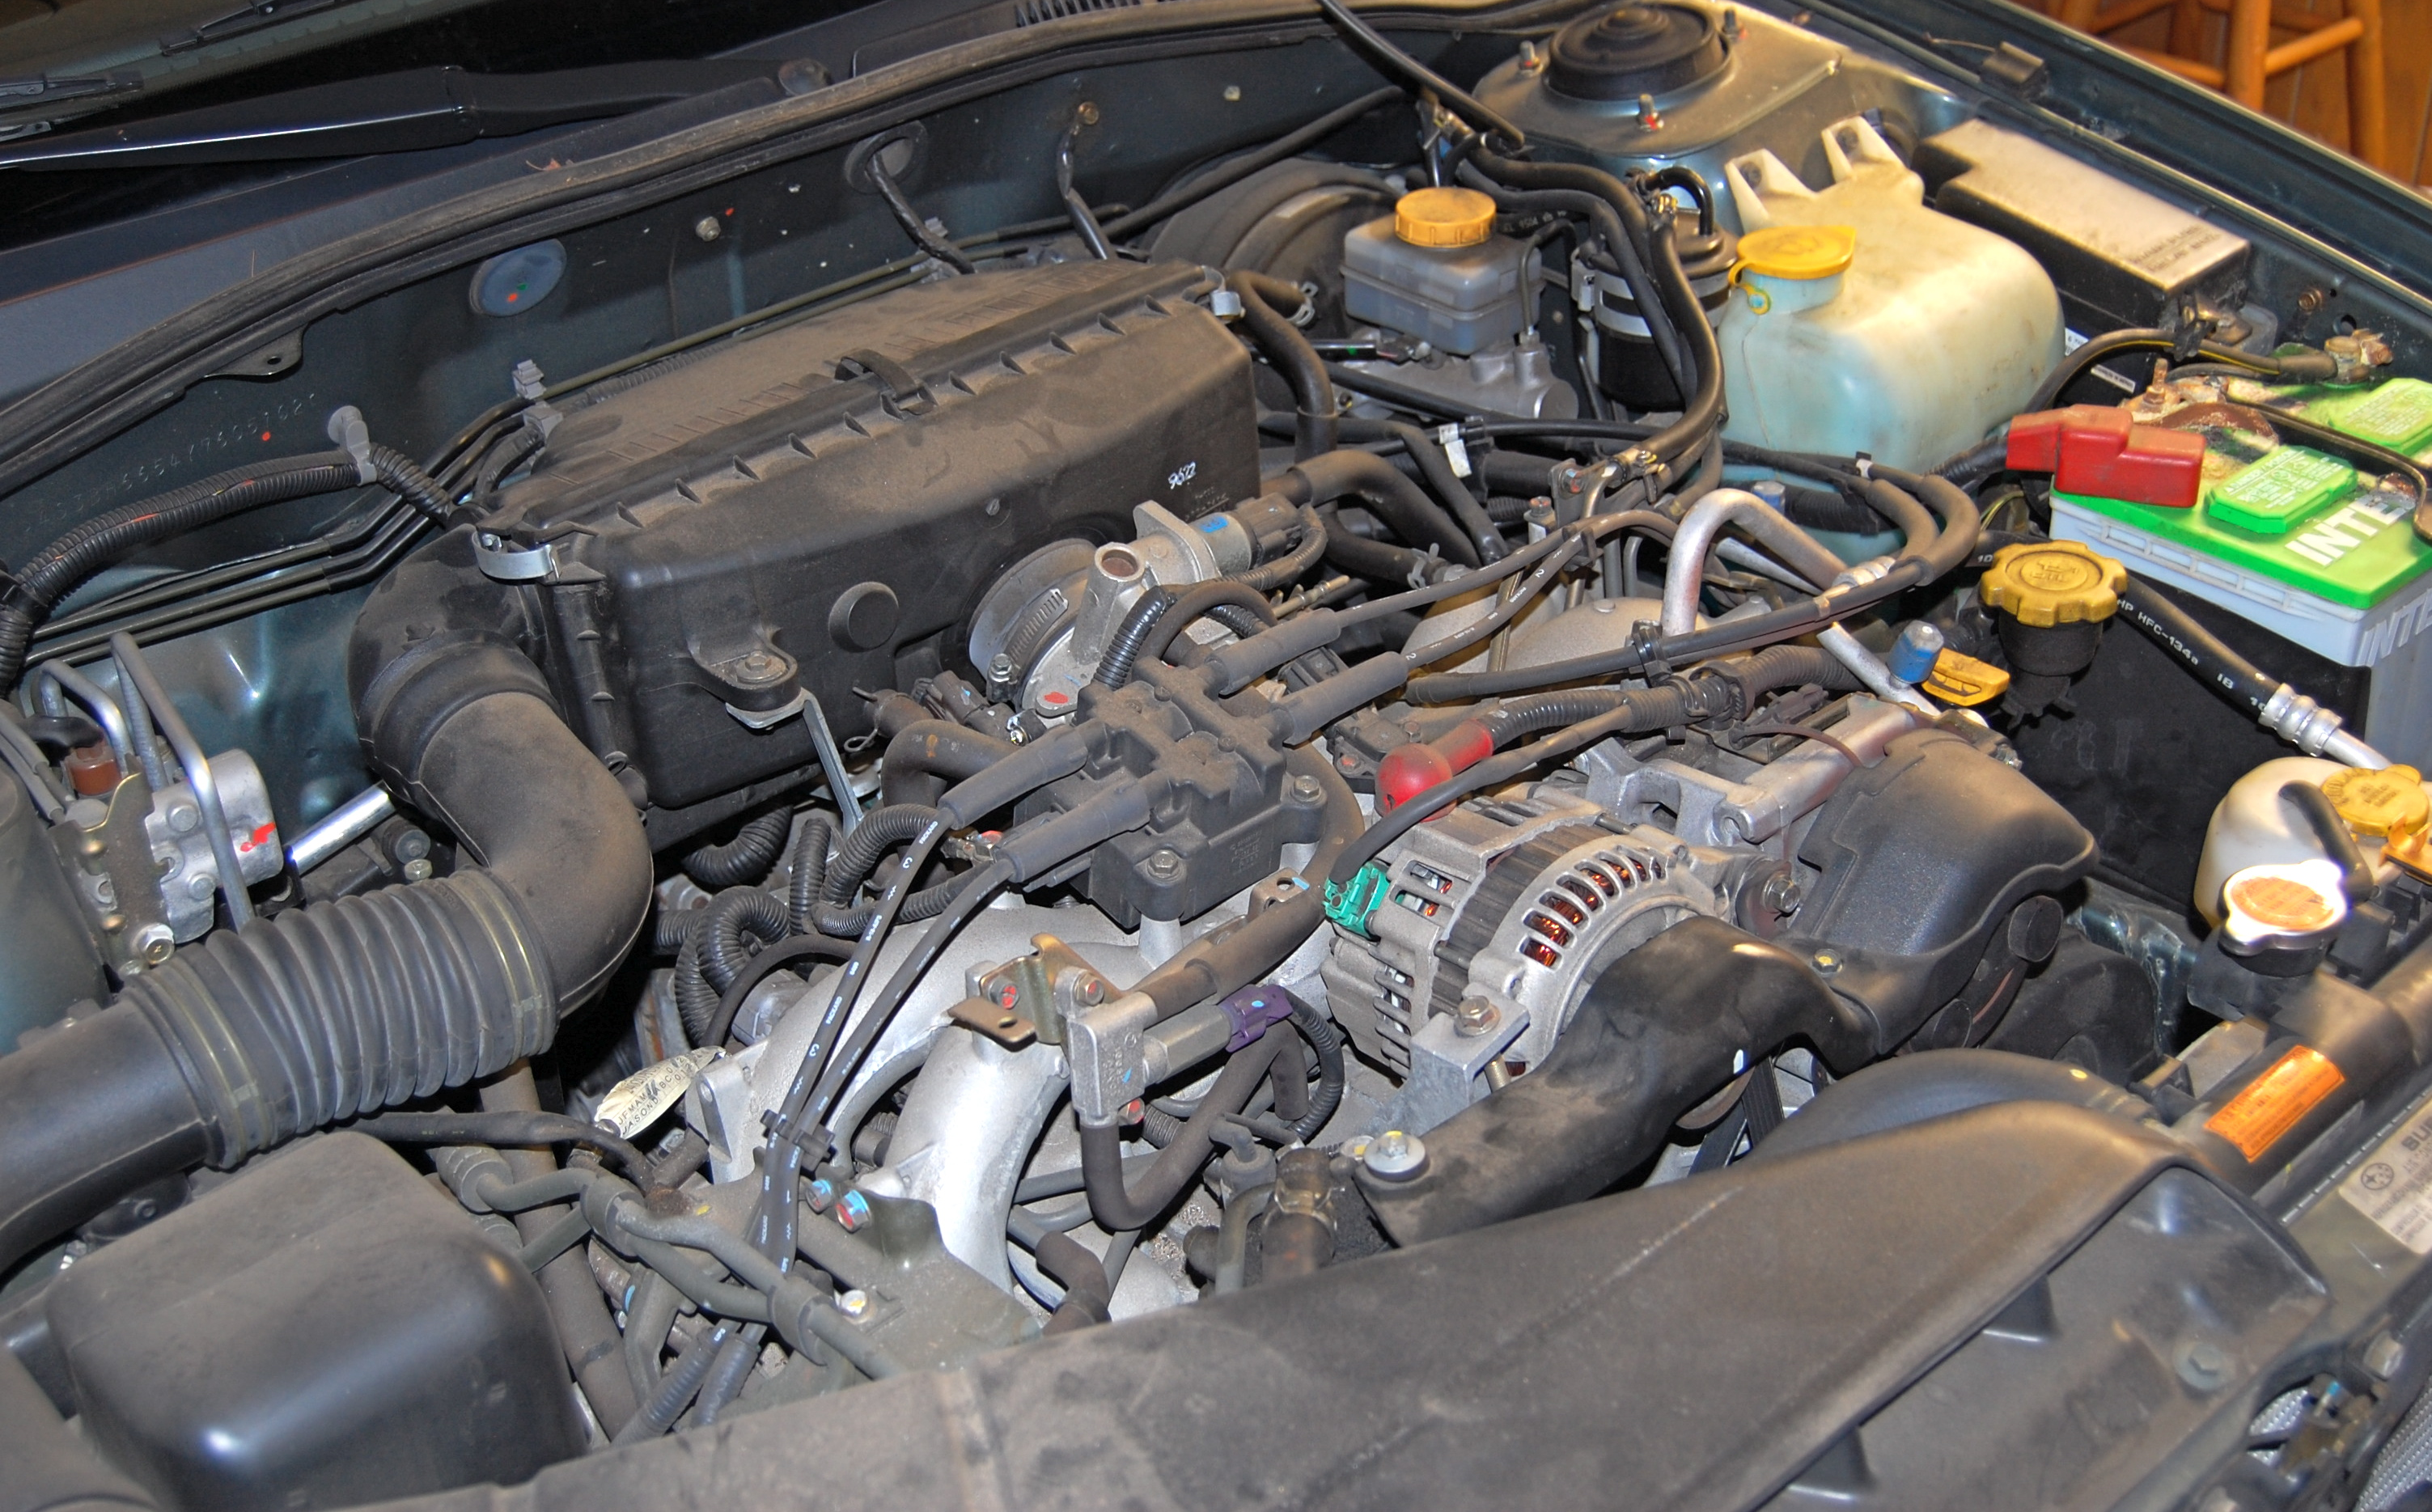 2000 subaru outback engine diagram 1979 mercury 150 hp outboard wiring is it worth to purchase 2004 page 2